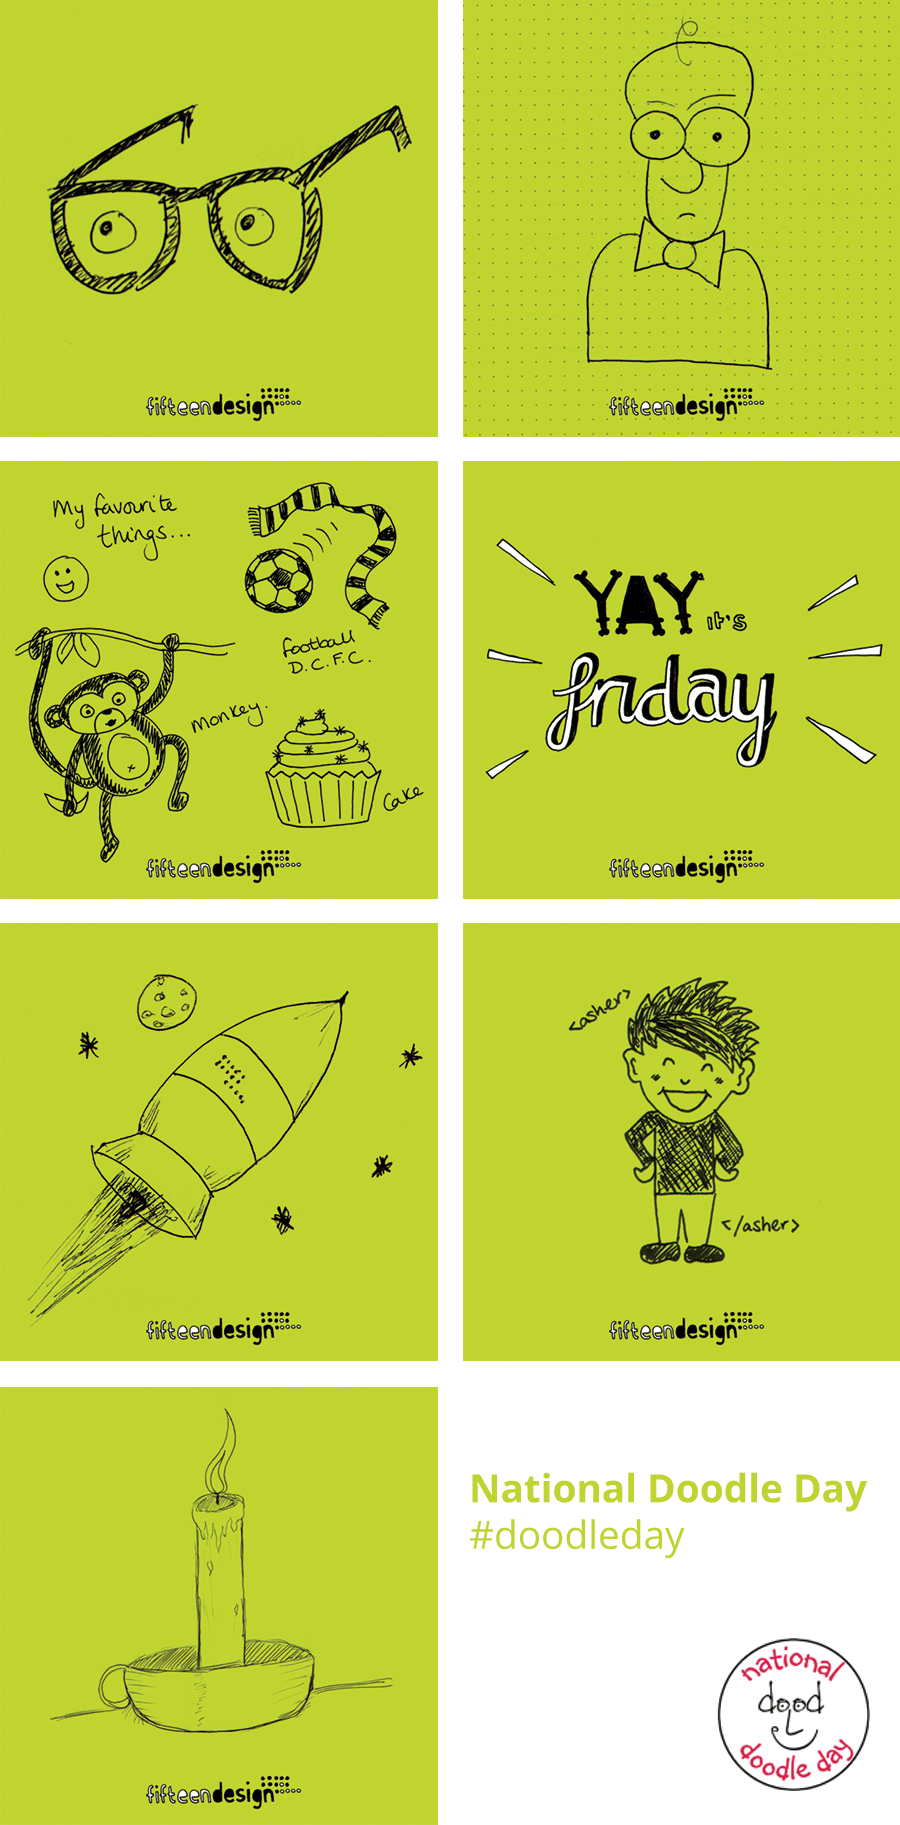 national doodle day